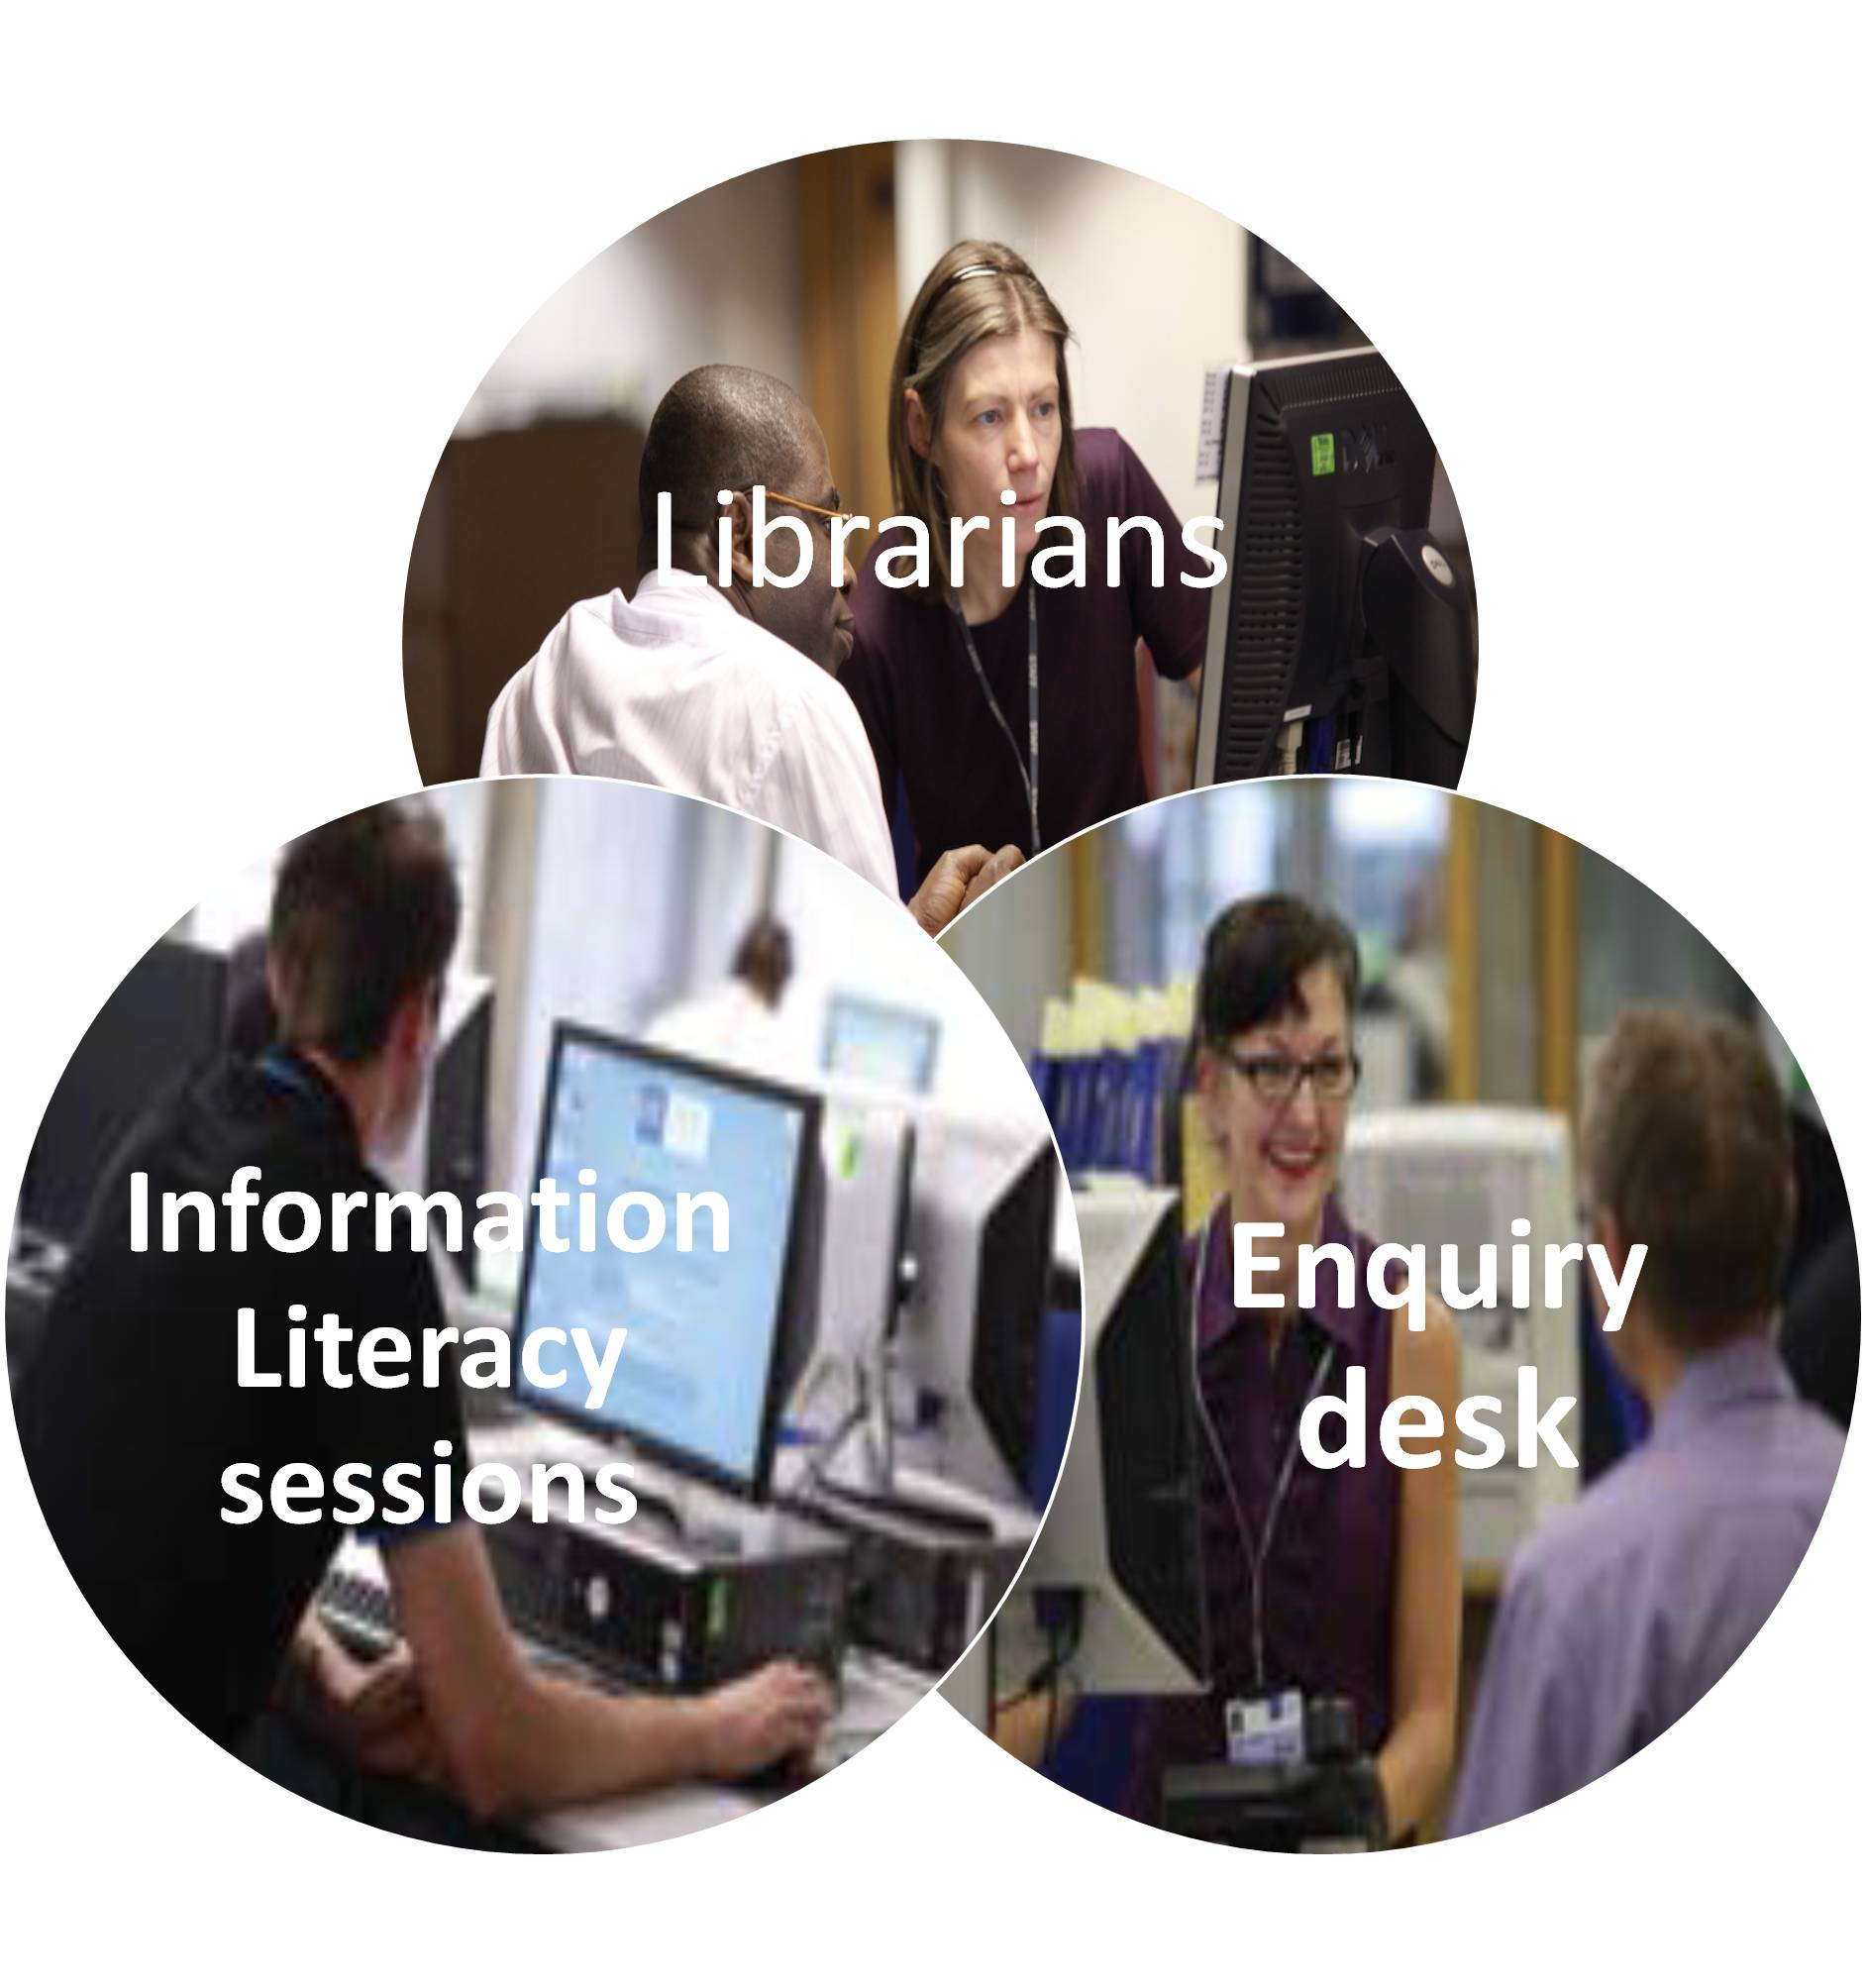 Graphic representing Librarians, Enquiry Desk and Information Literacy